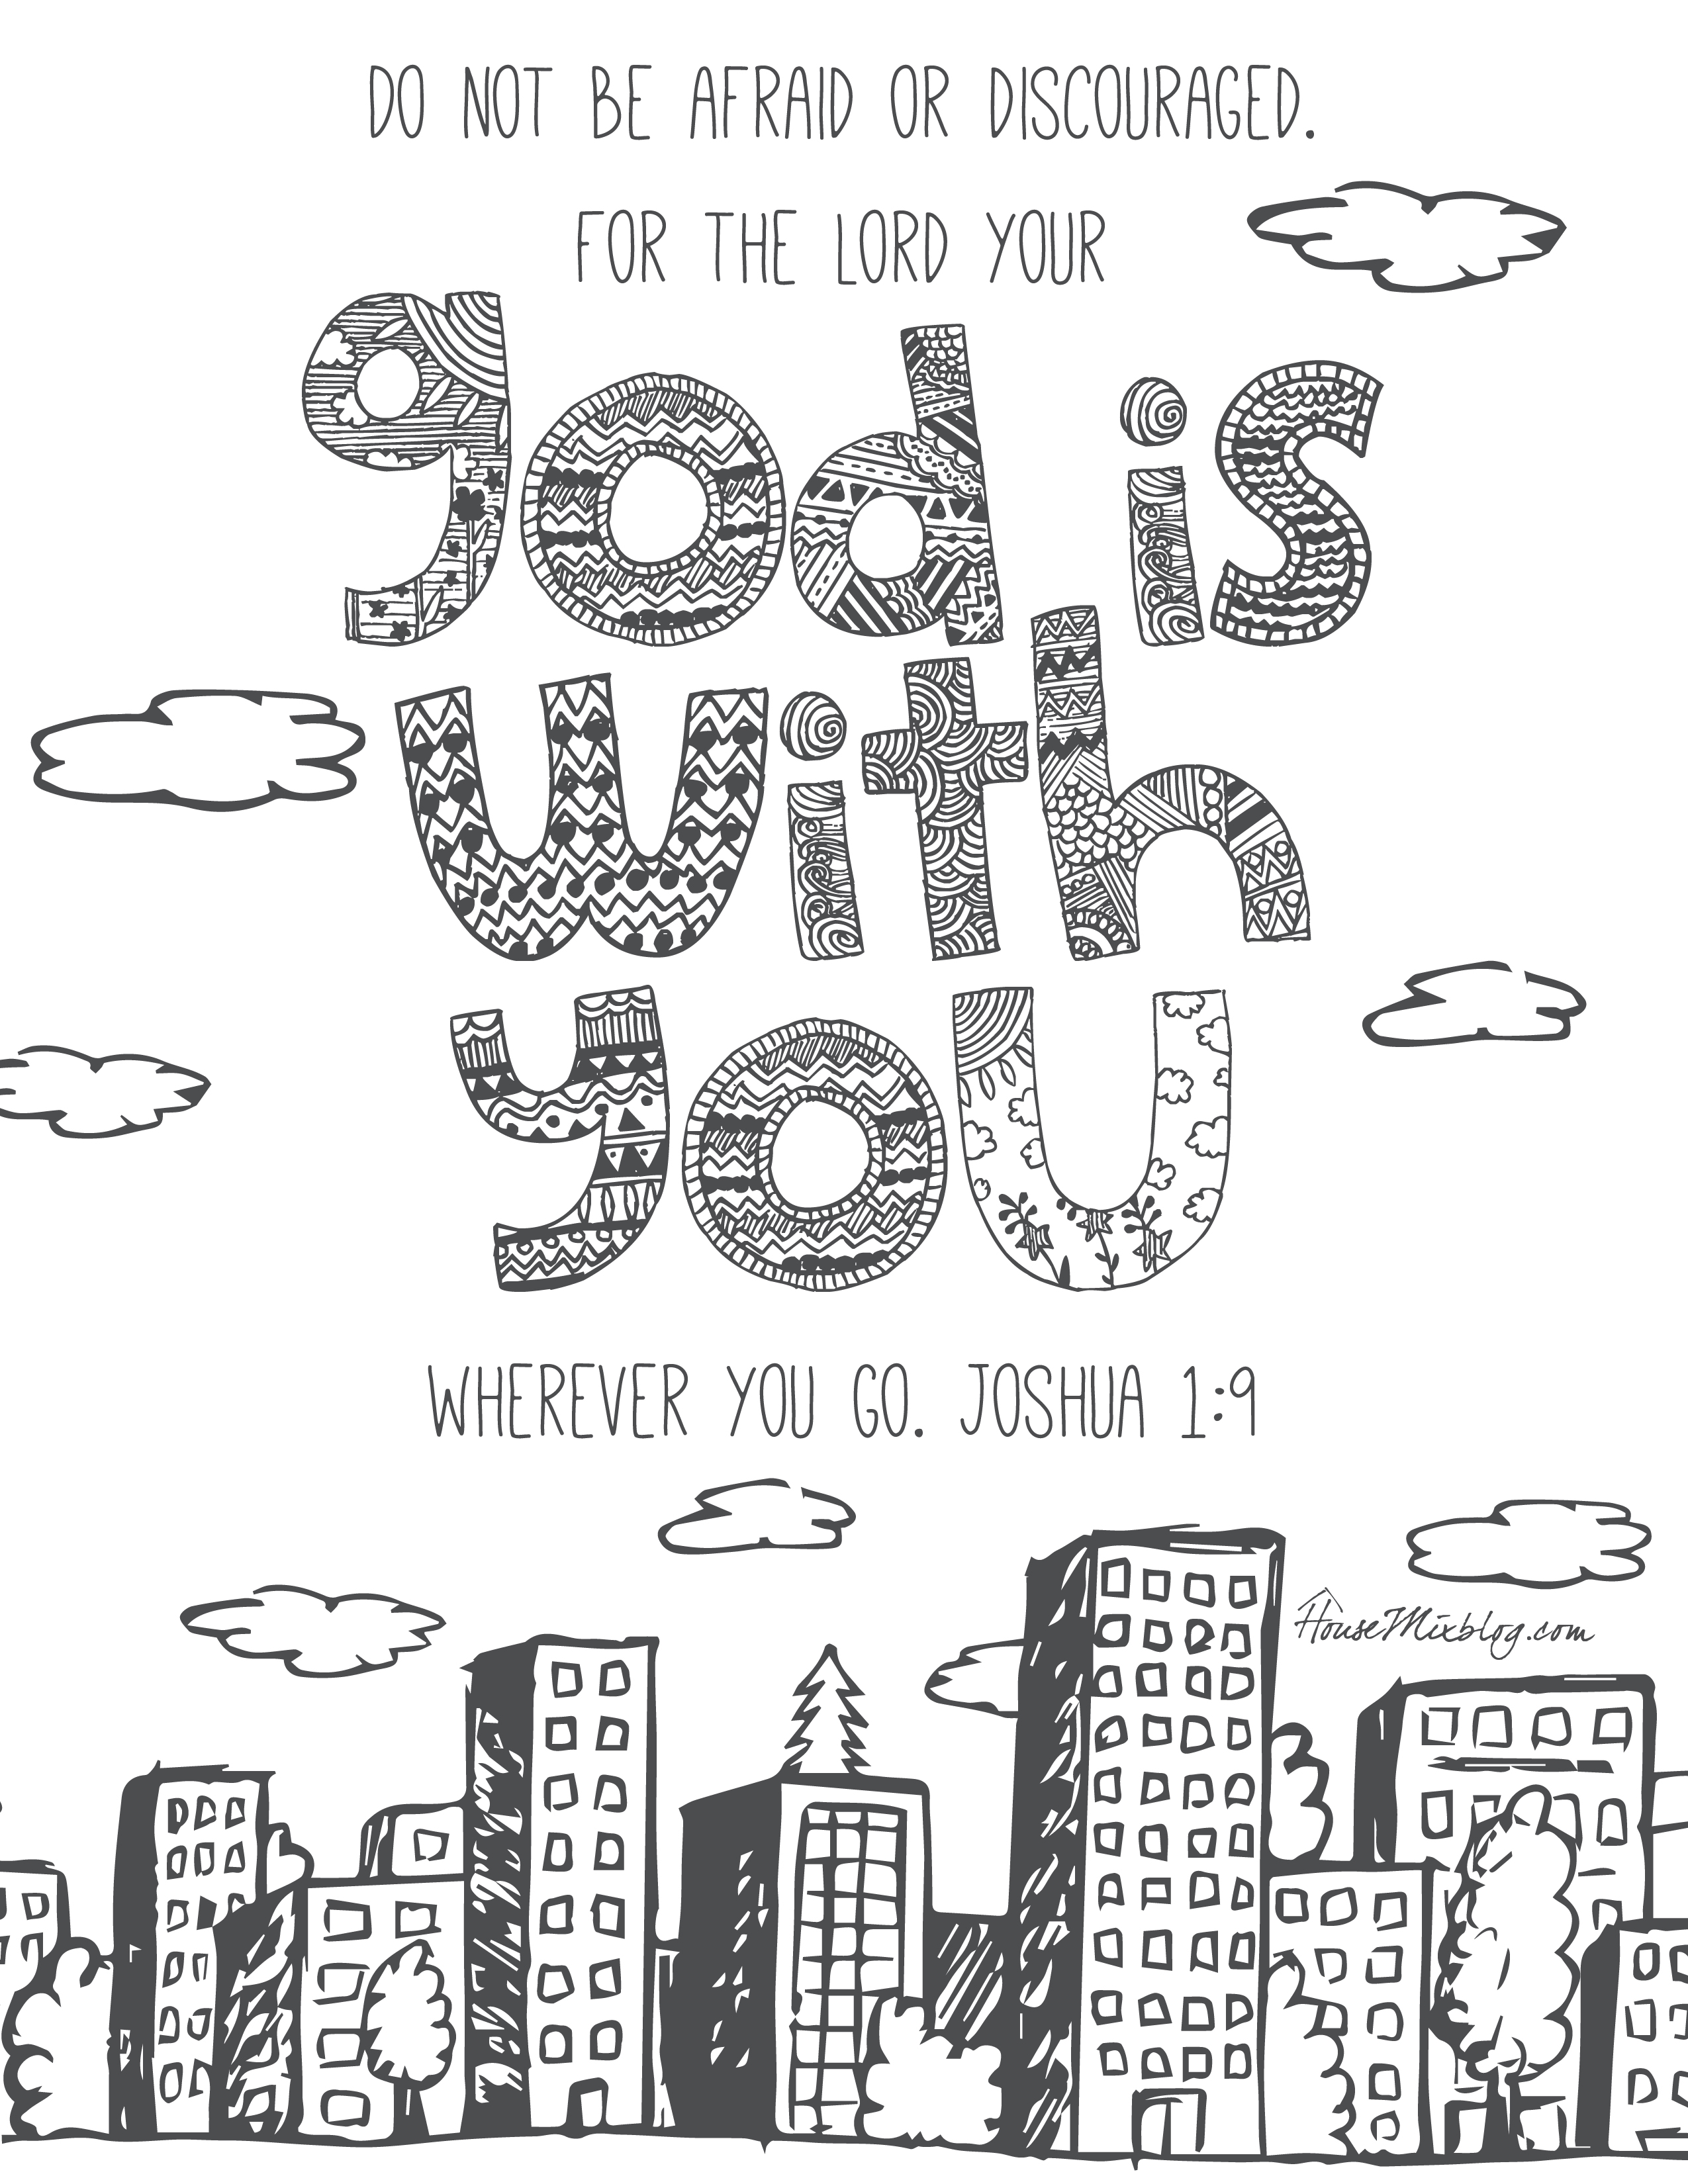 free printable bible coloring pages for children free printable bible coloring pages awesome collection for free coloring pages children bible printable